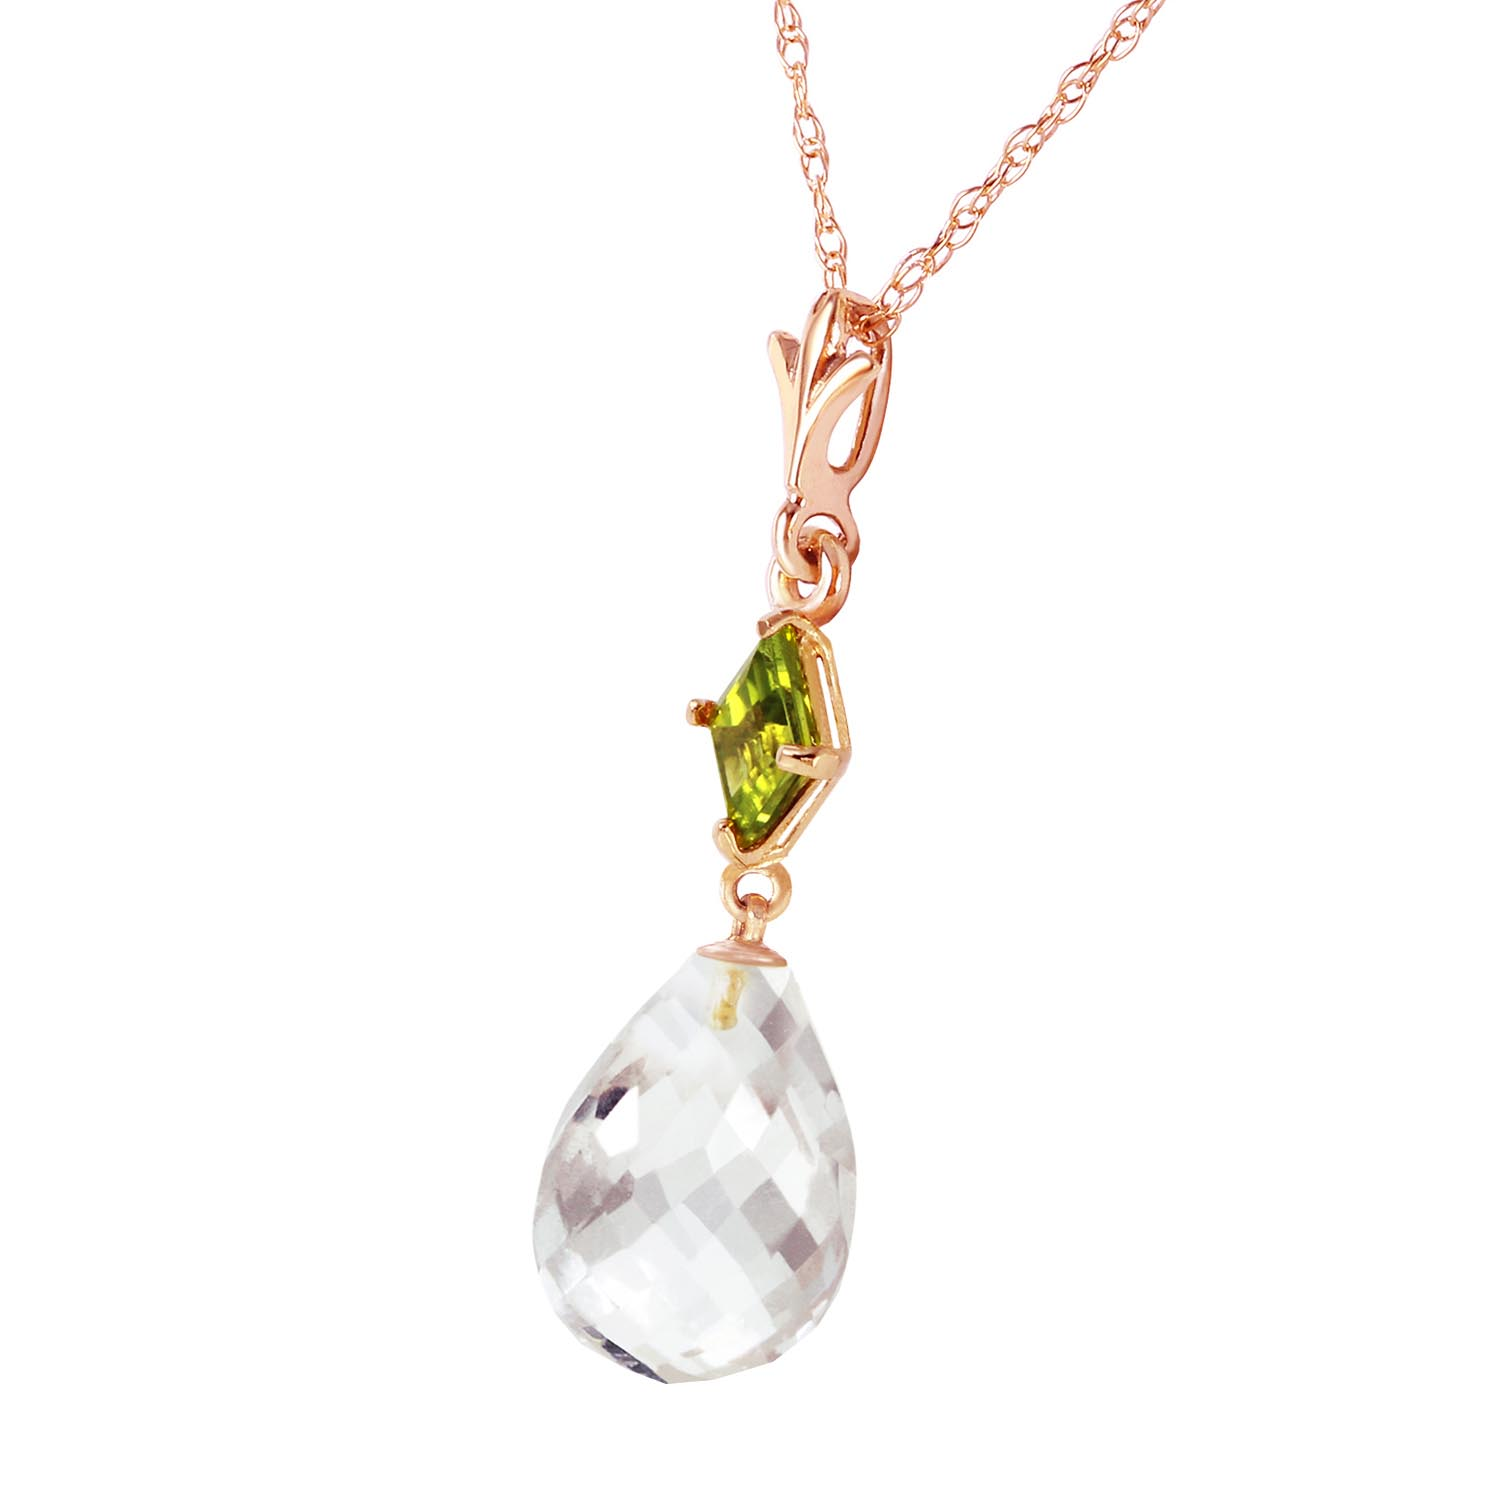 White Topaz and Peridot Pendant Necklace 5.5ctw in 9ct Rose Gold